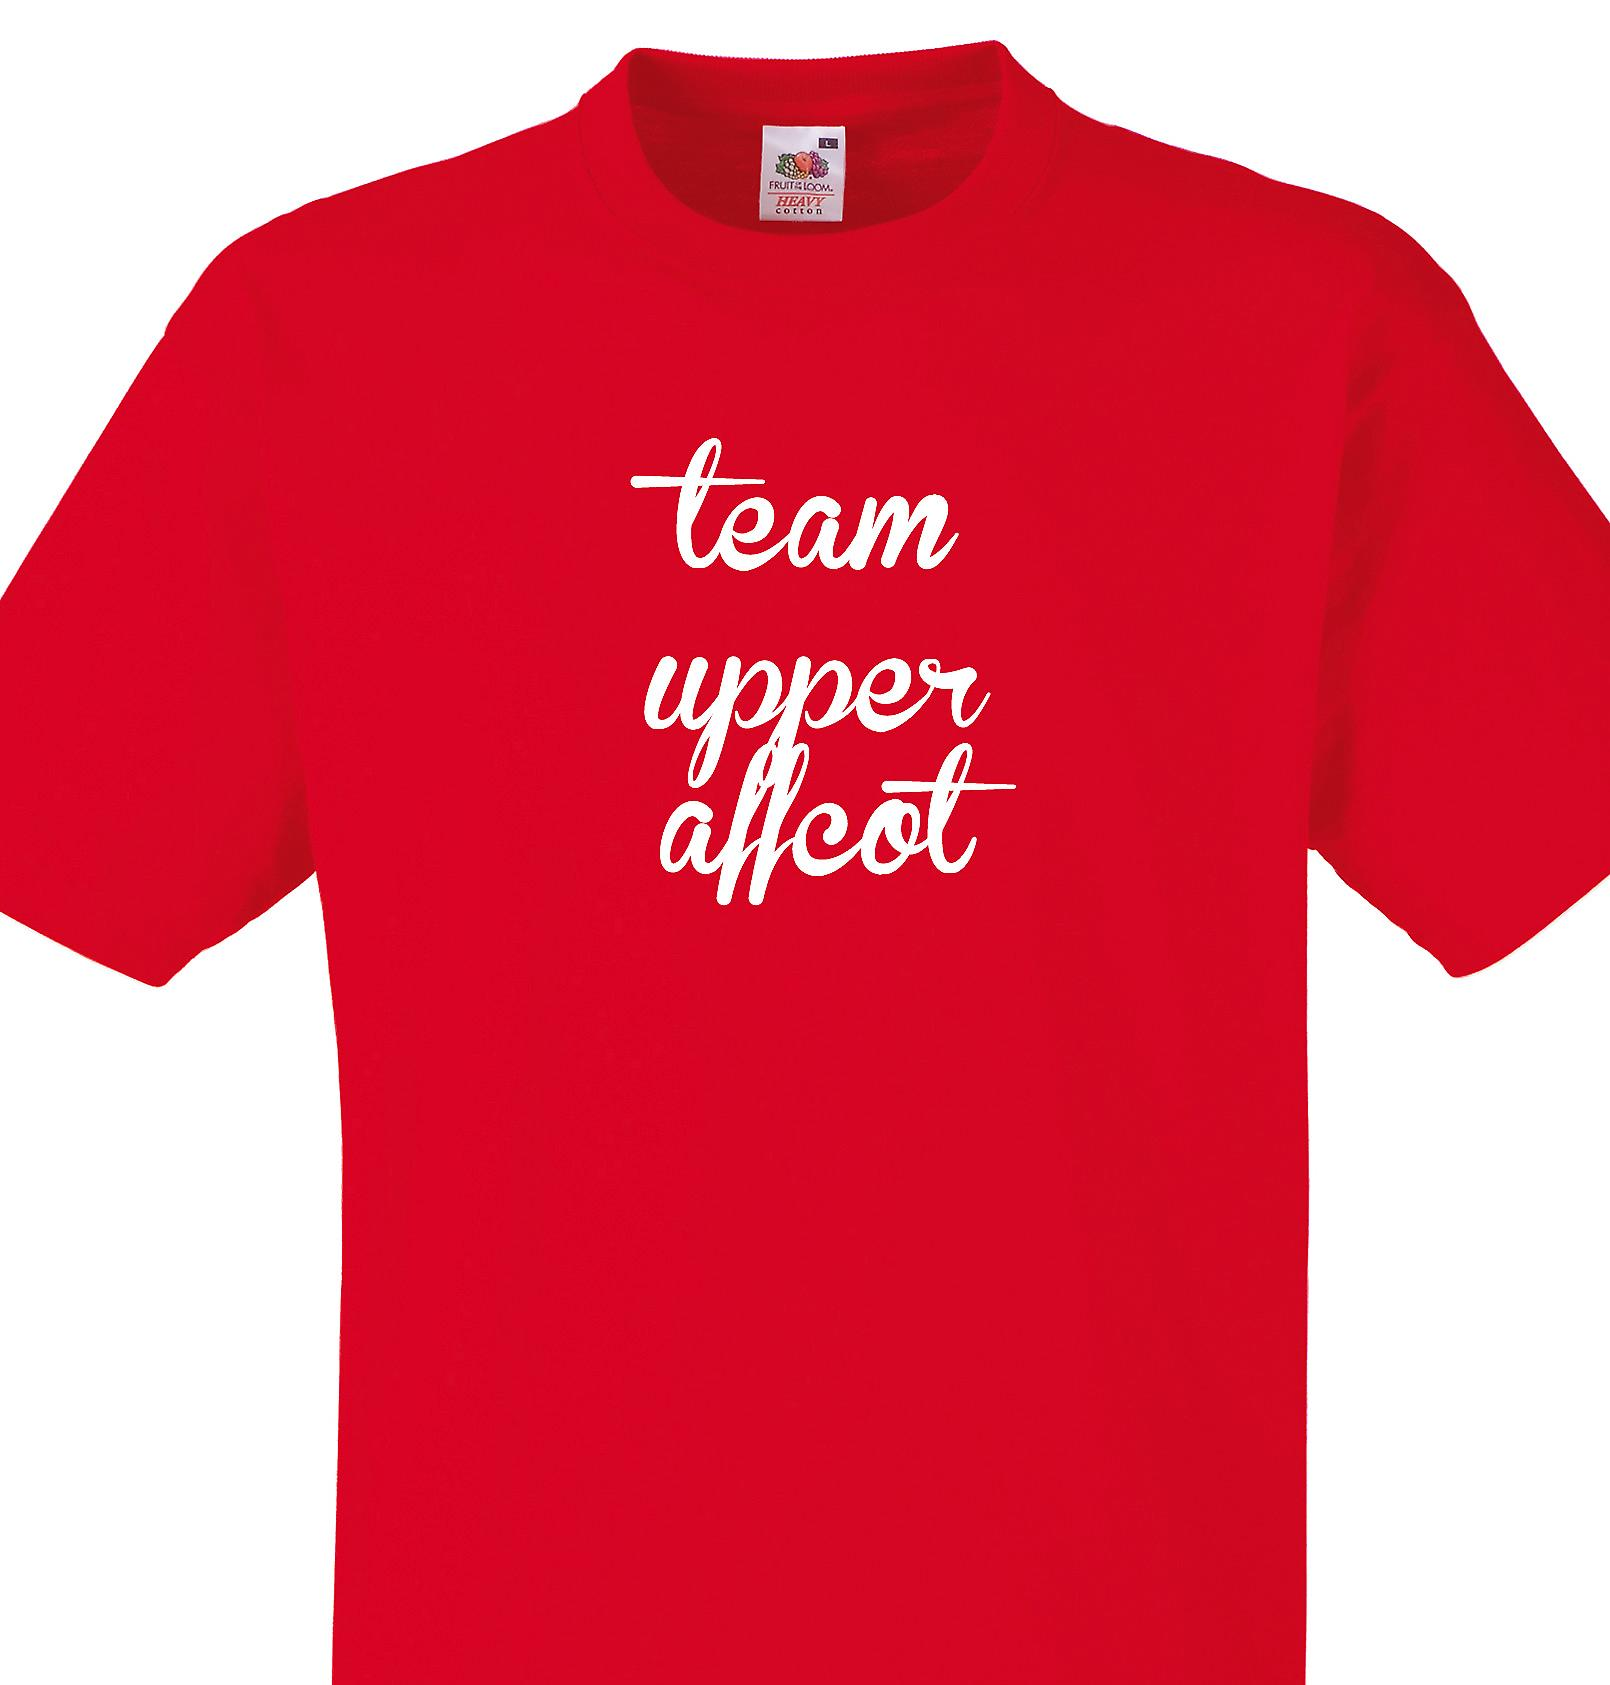 Team Upper affcot Red T shirt